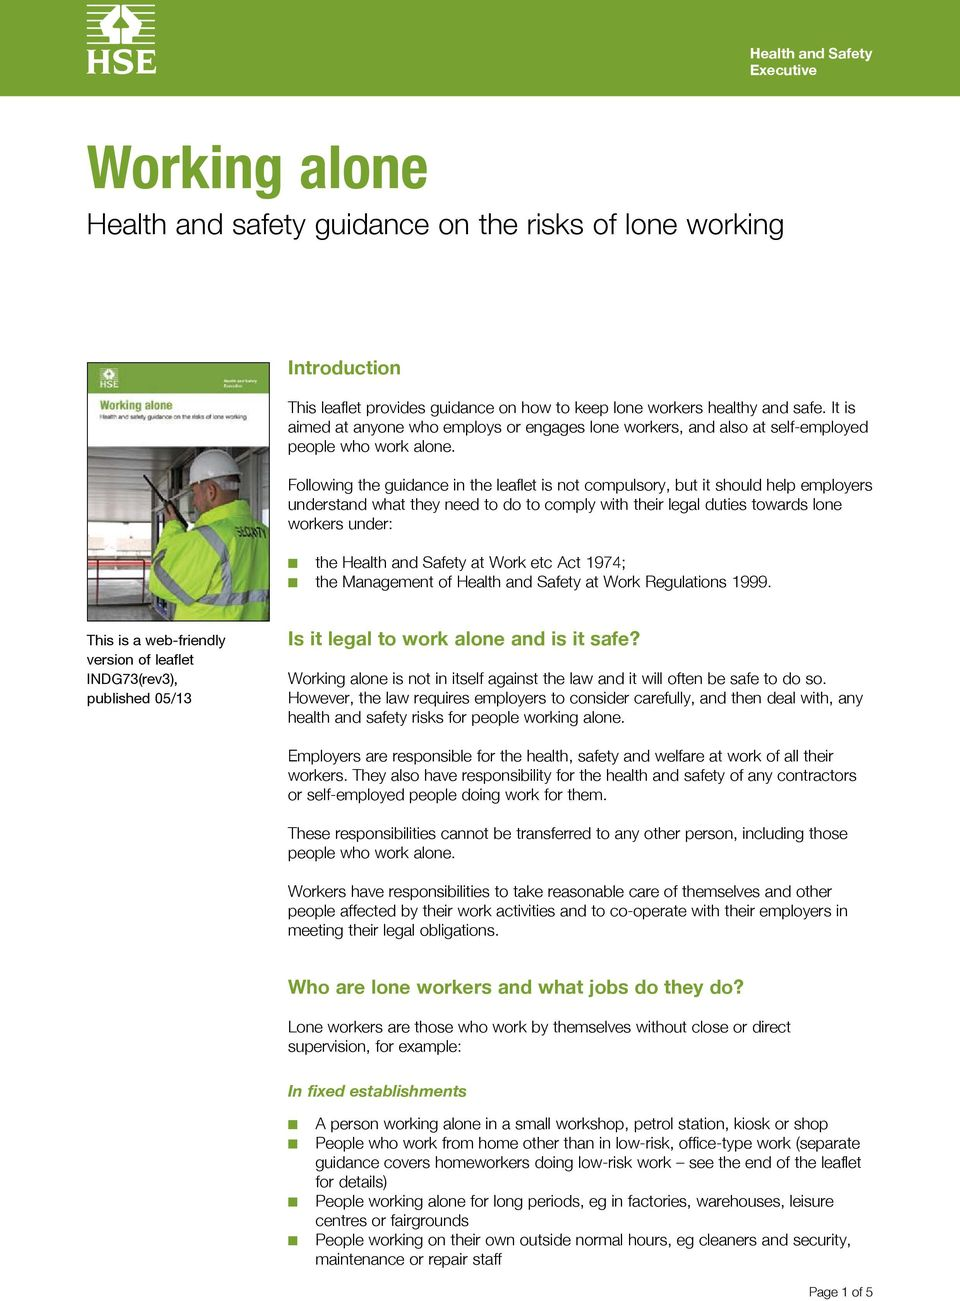 Following the guidance in the leaflet is not compulsory, but it should help employers understand what they need to do to comply with their legal duties towards lone workers under: the Health and